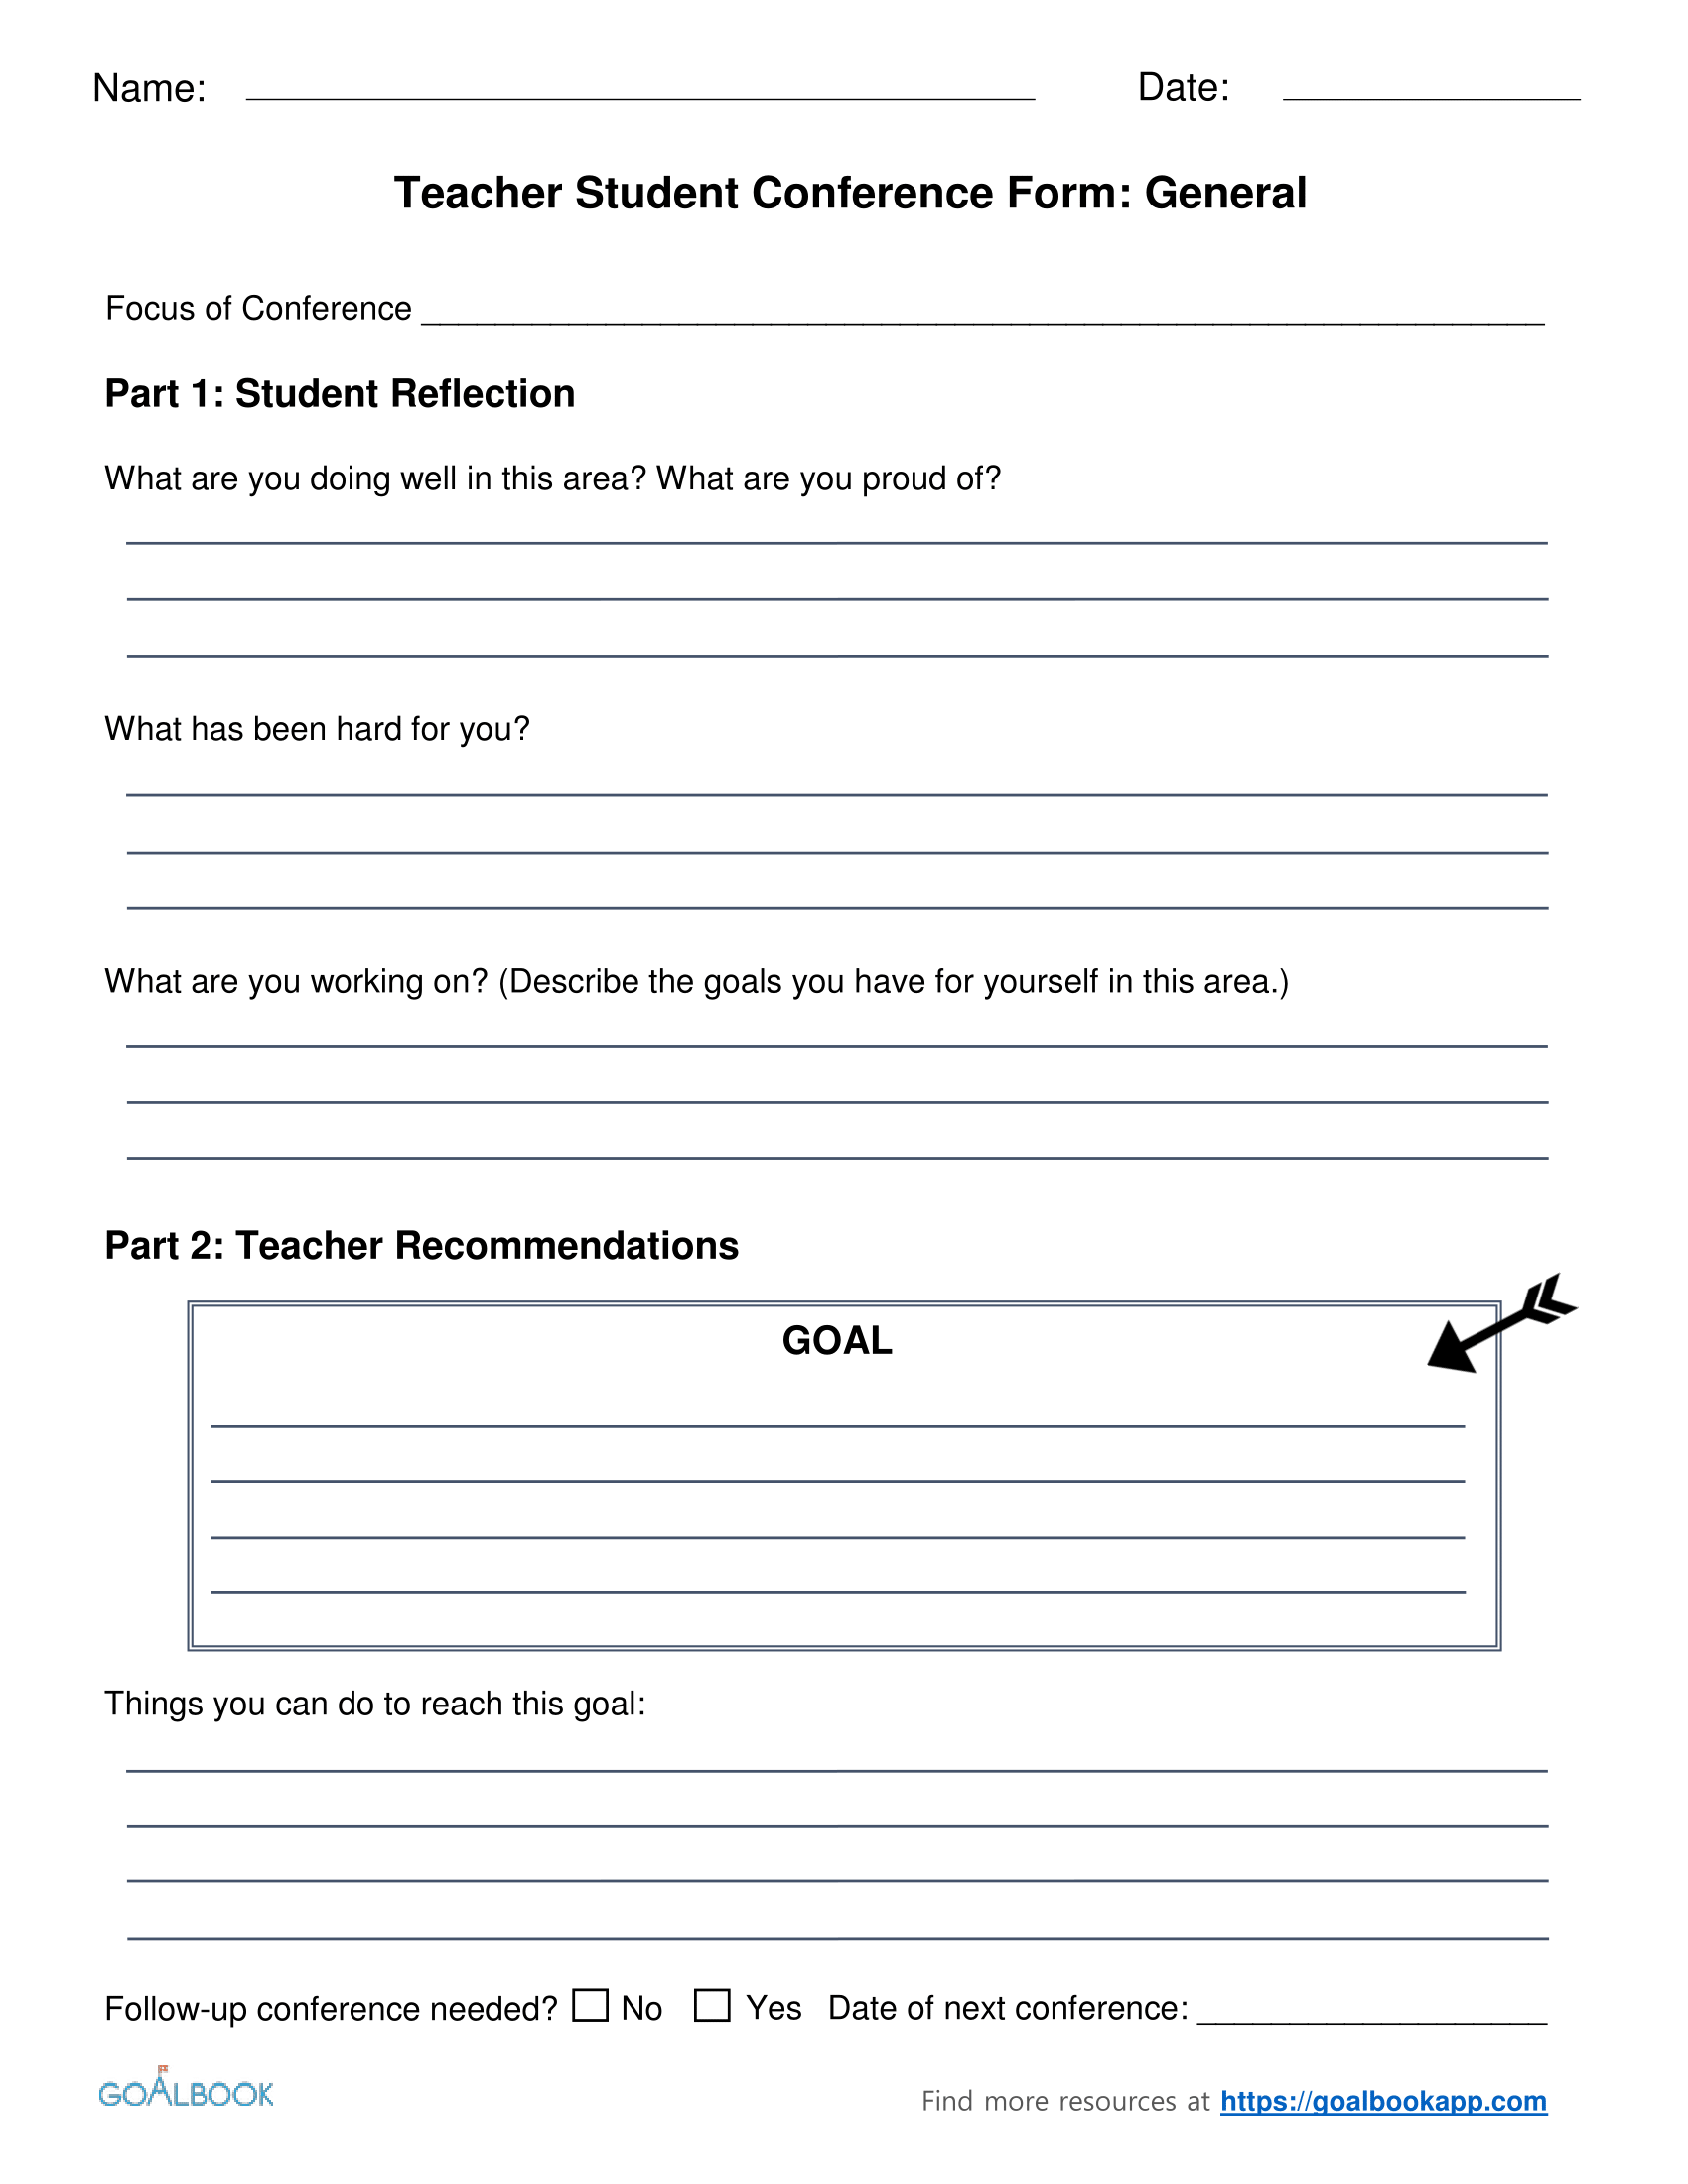 Goal-Setting Student-Teacher Conference Form